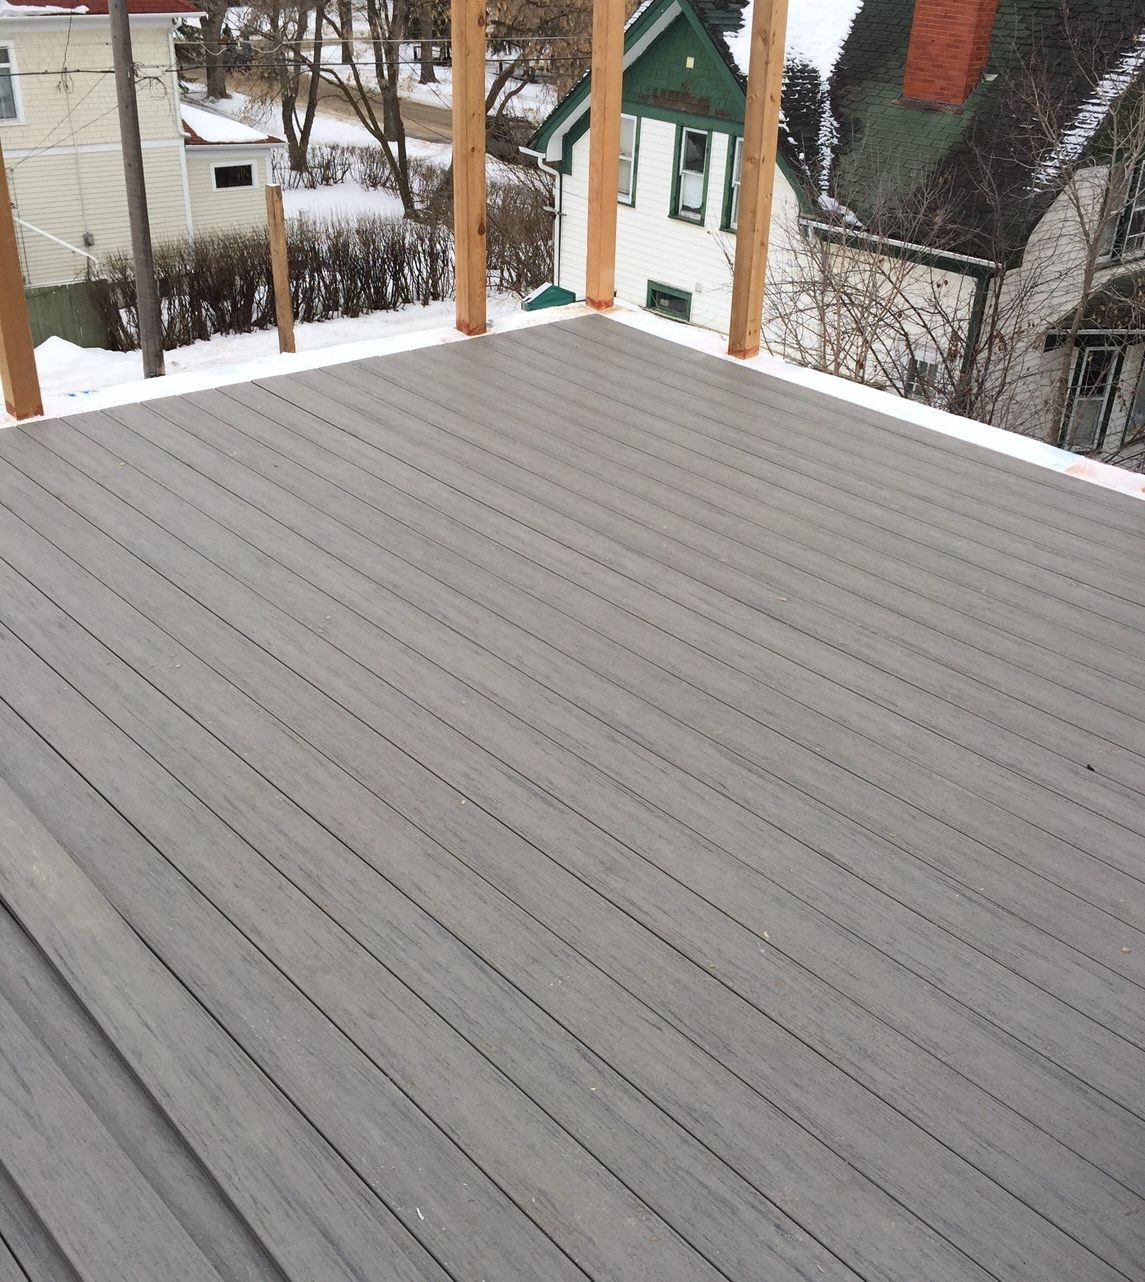 Rooftop Patio Composite Deck Under Construction Timber Tech Earthwood Evolutions Terrain In Silver Maple Rooftop Patio Blue Siding Deck